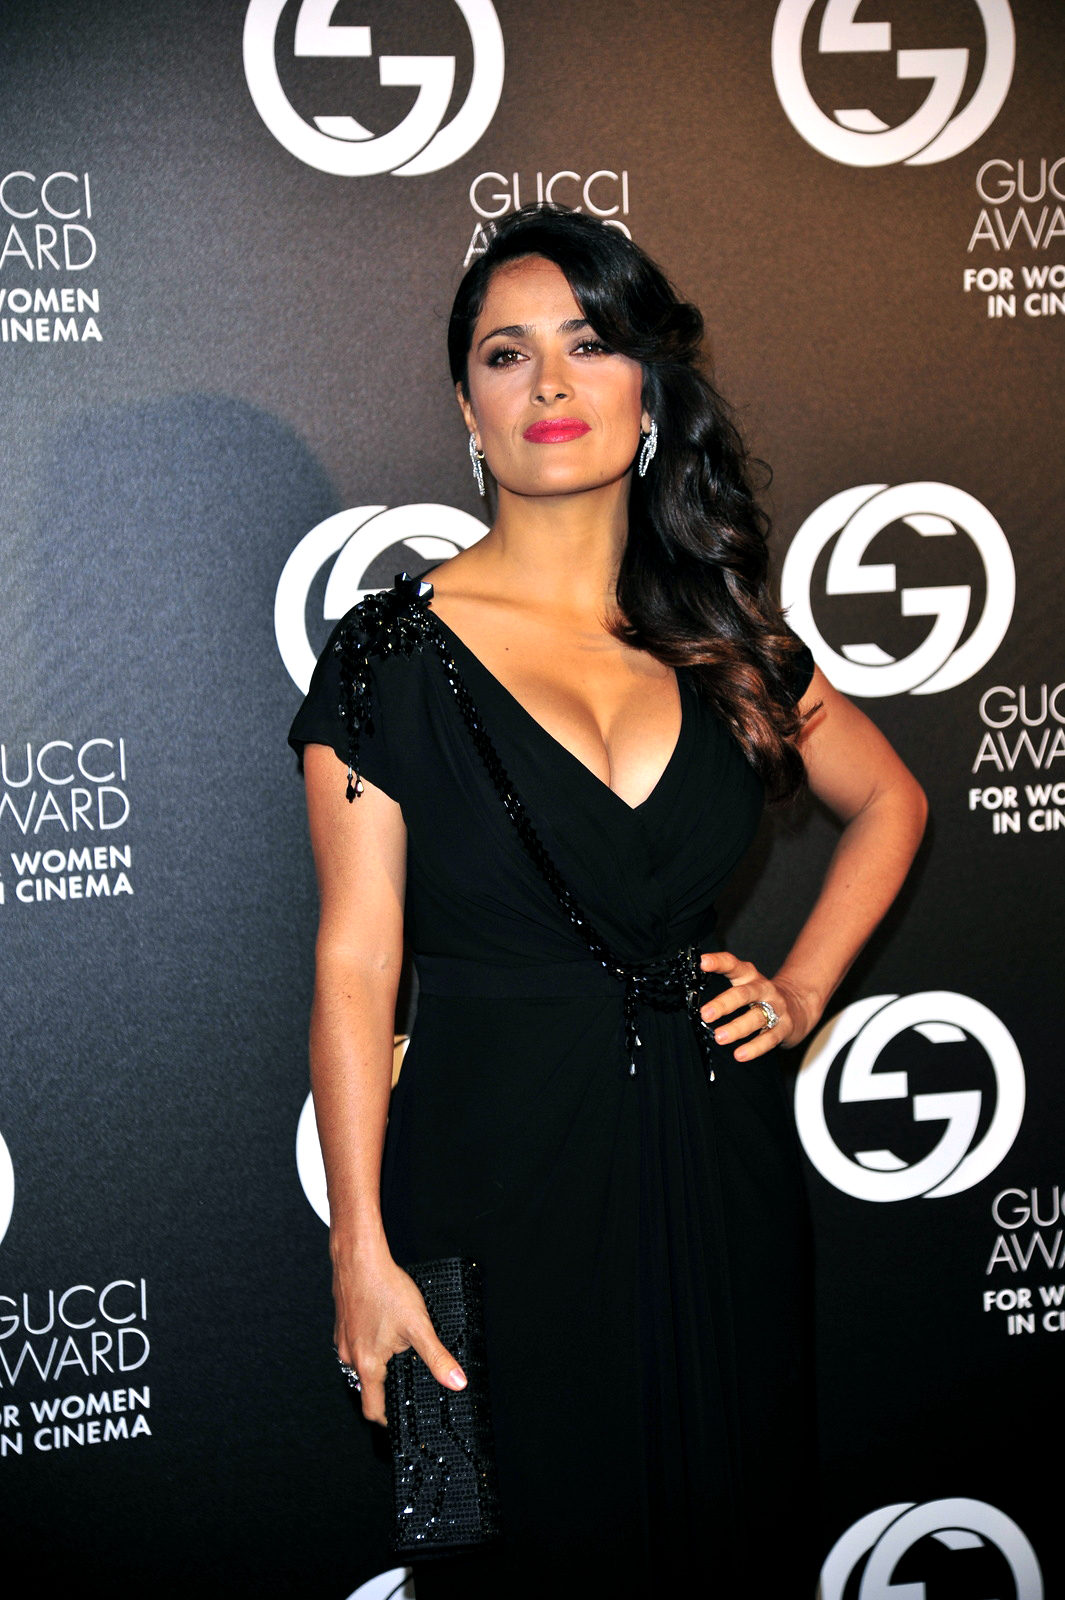 Salma Hayek photo #880130